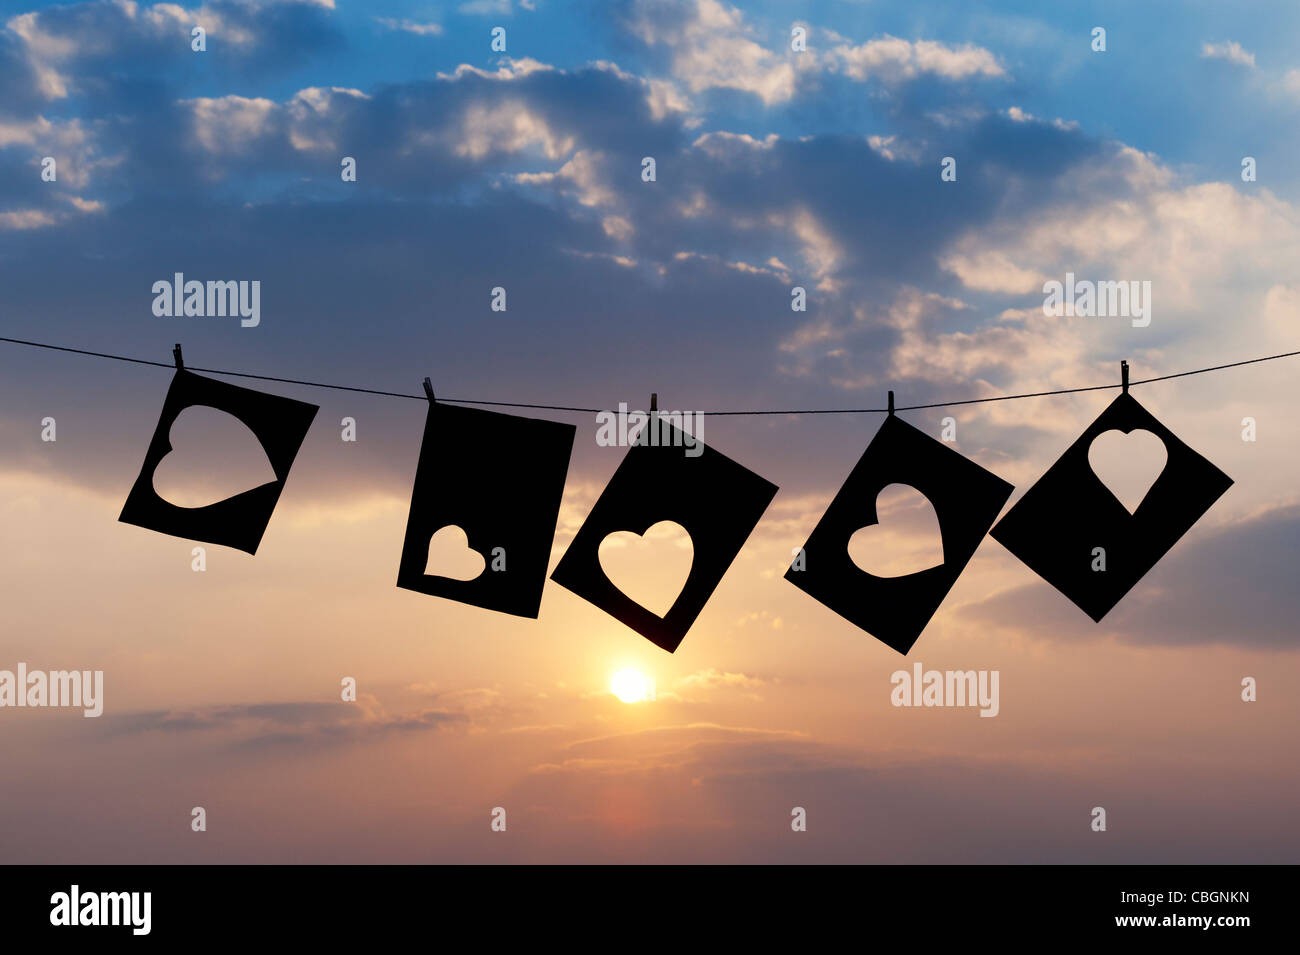 Cut out heart shapes hanging on a line against sunset. Silhouette - Stock Image